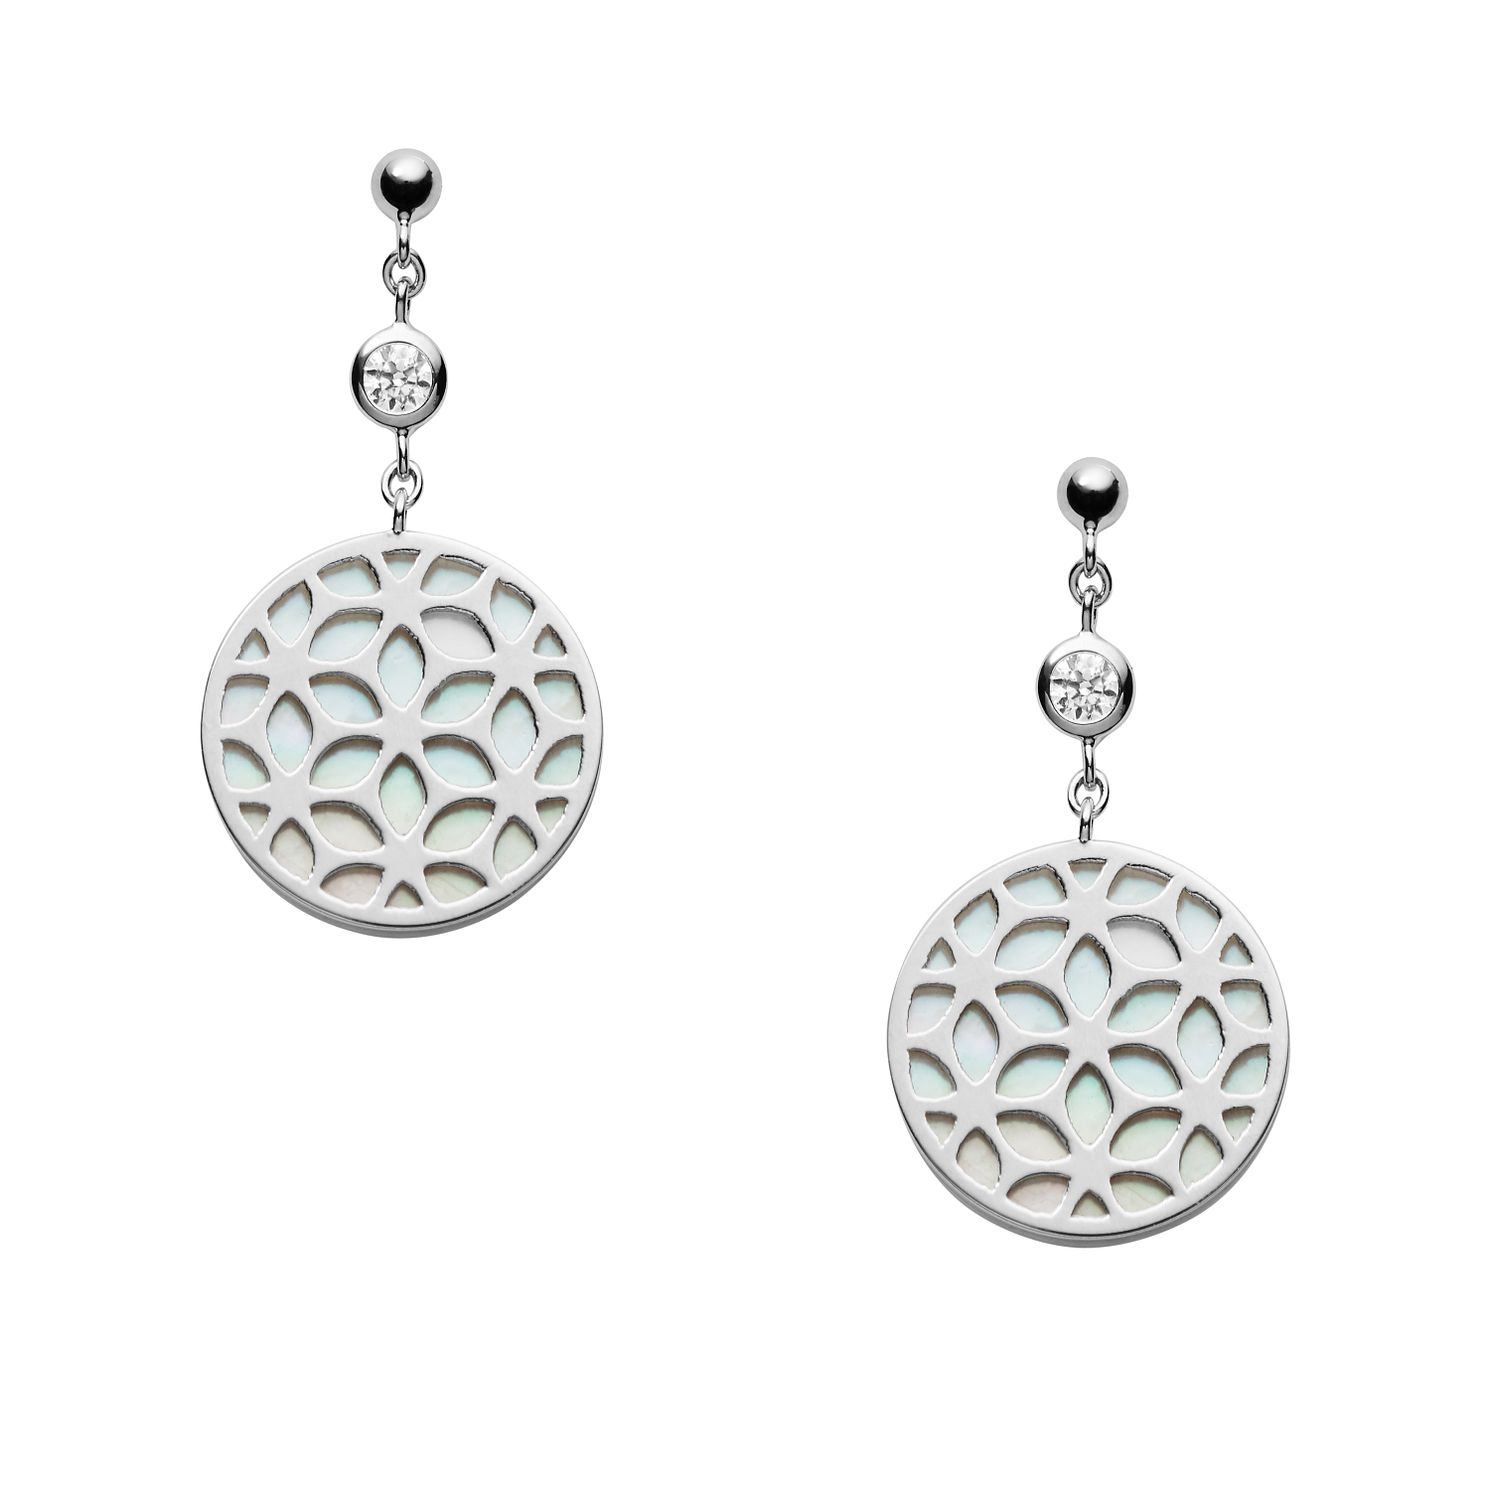 Fossil Floral Ladies' Sterling Silver Drop Earrings - Product number 2358778